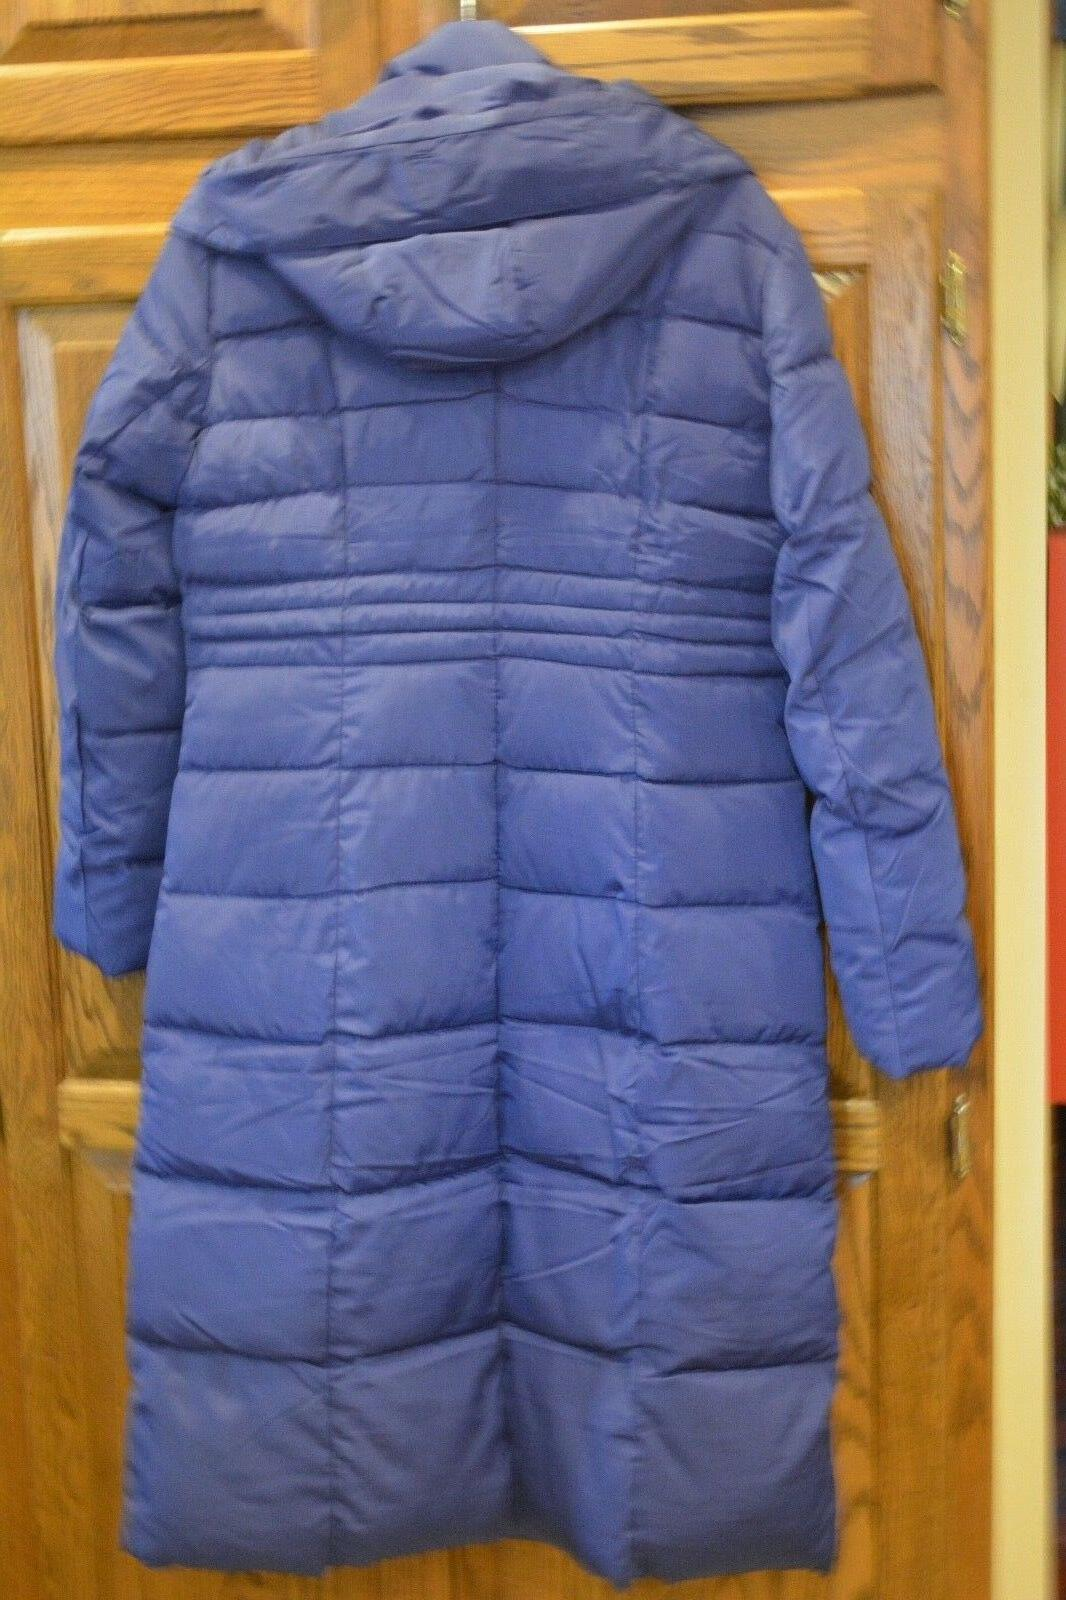 Womens Down Warm Winter Parka Blue Color New Top Quality